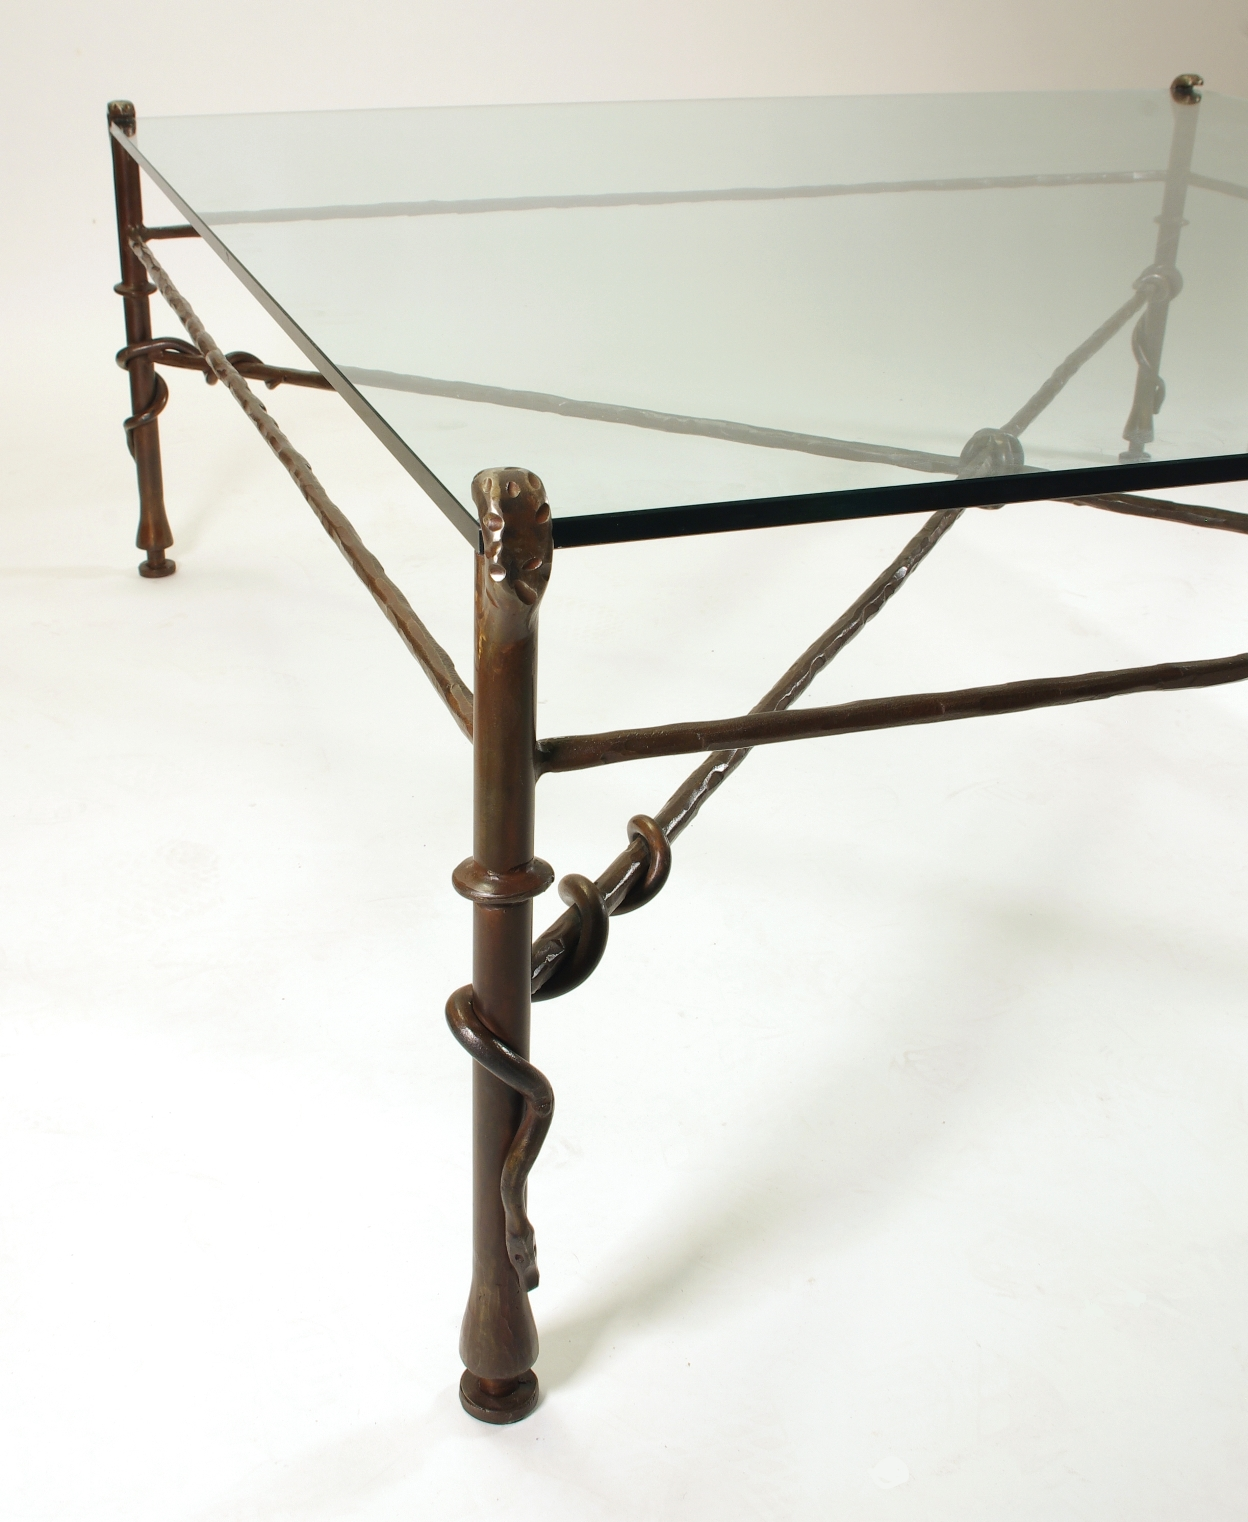 Giacometti Inspired Wrought Iron and Glass Coffee Table